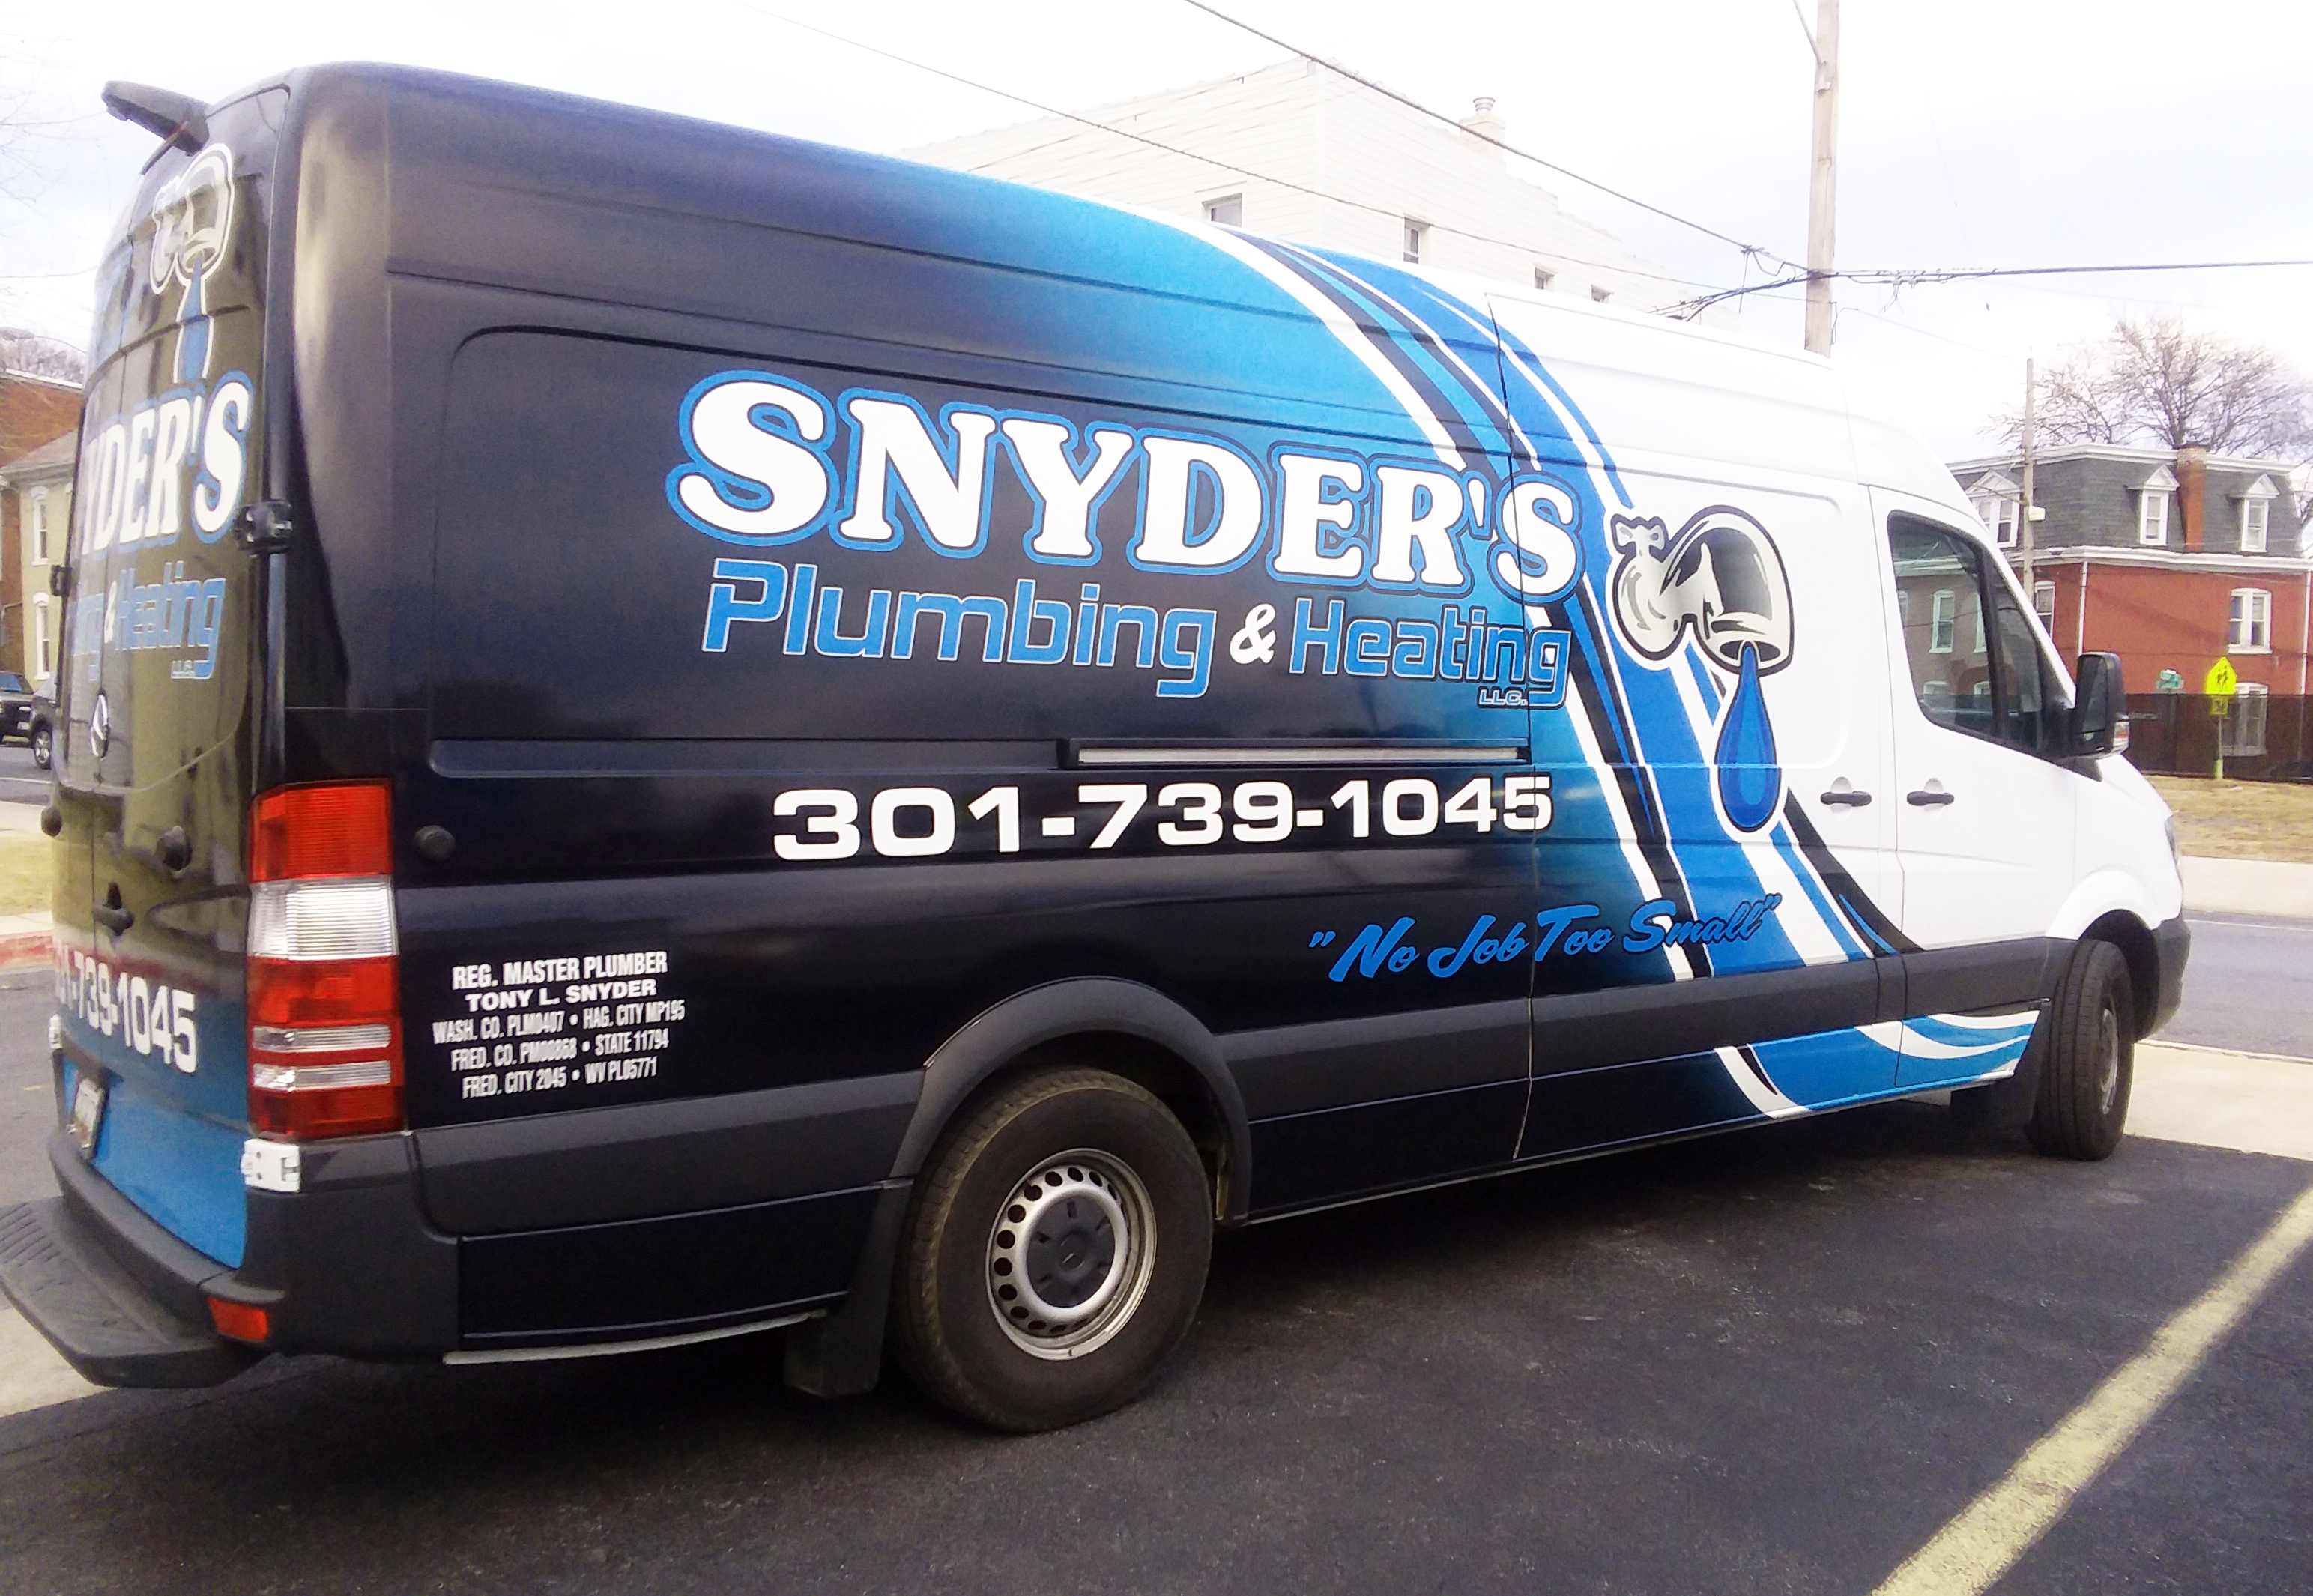 Snyder's Plumbing & Heating wrap